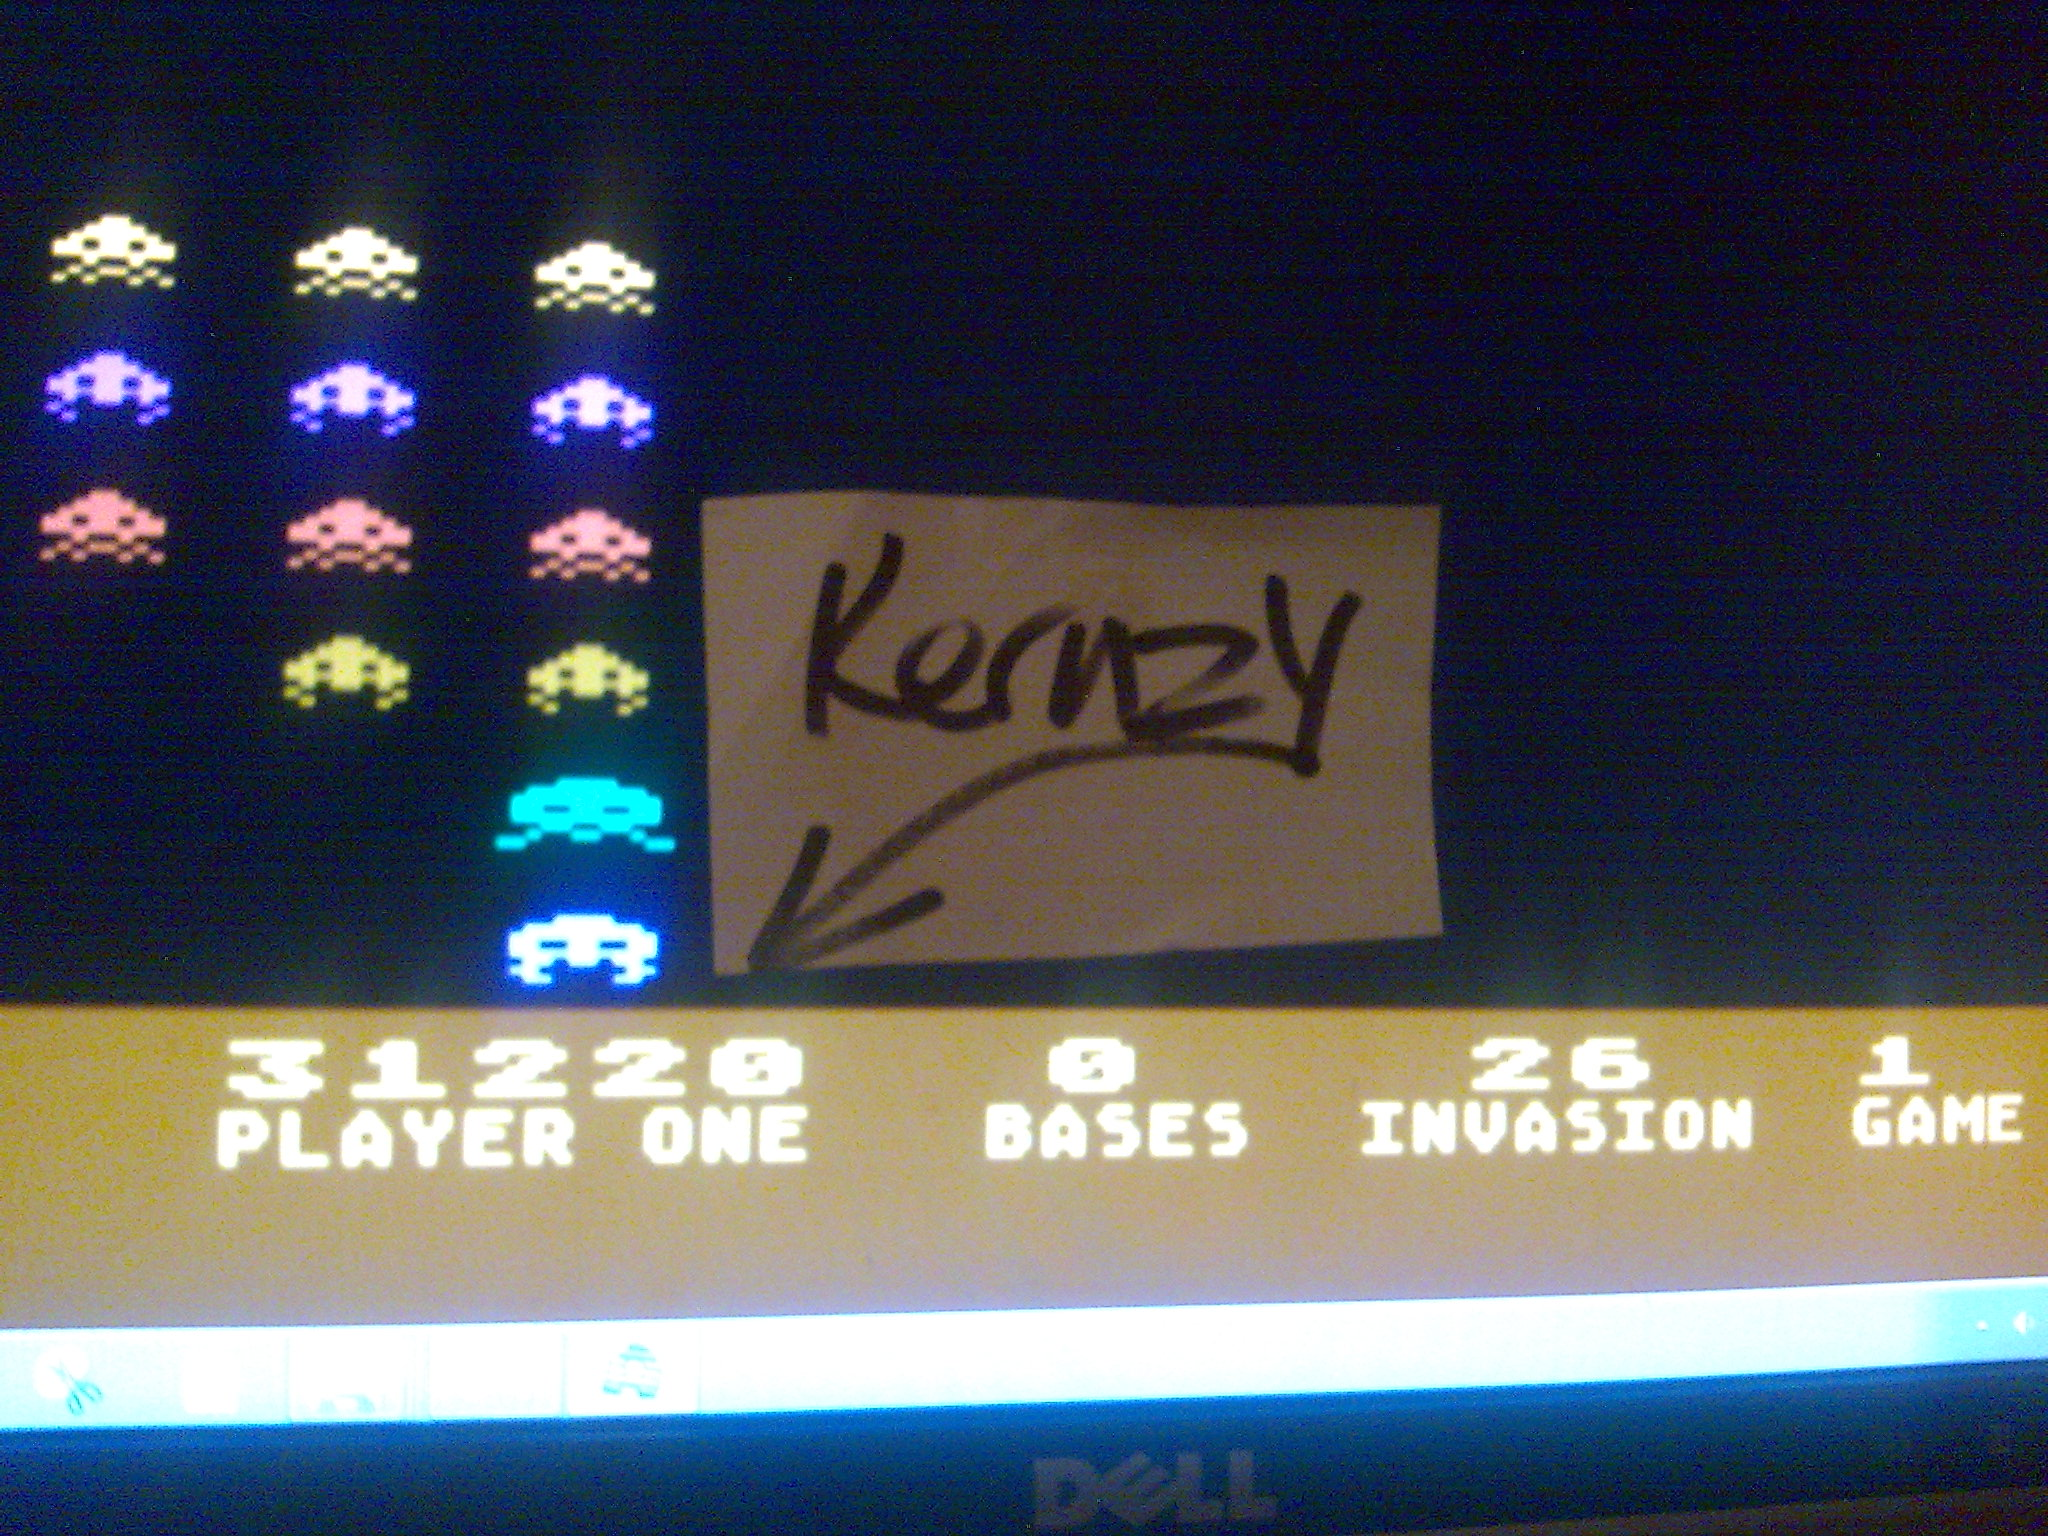 kernzy: Deluxe Invaders: Game 1 (Atari 400/800/XL/XE Emulated) 31,220 points on 2014-10-21 23:46:41